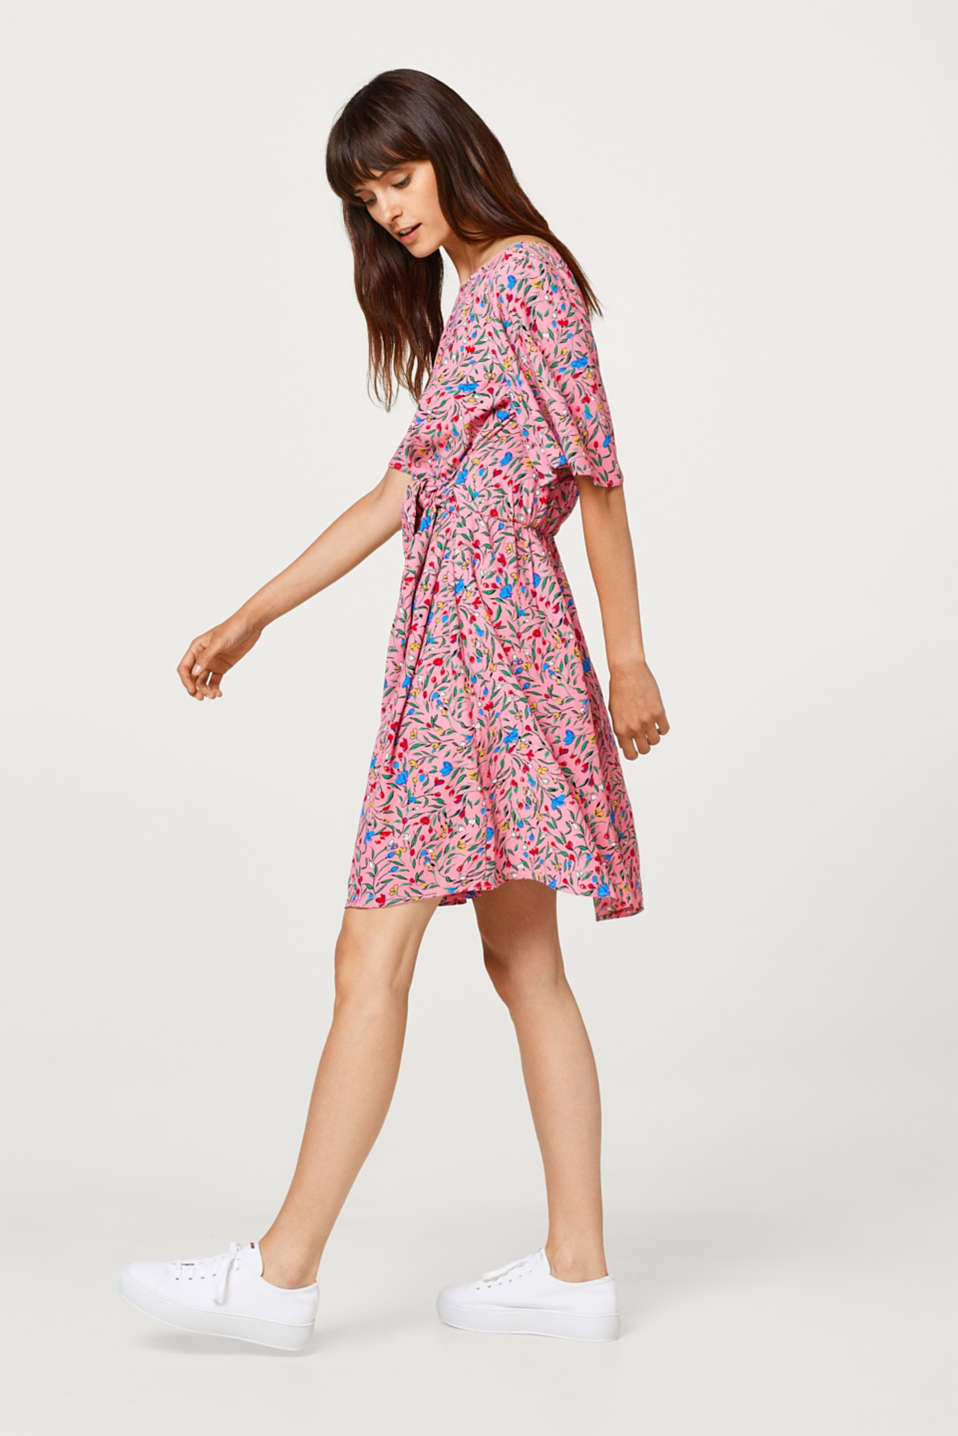 Esprit - Print dress with knot details and cap sleeves